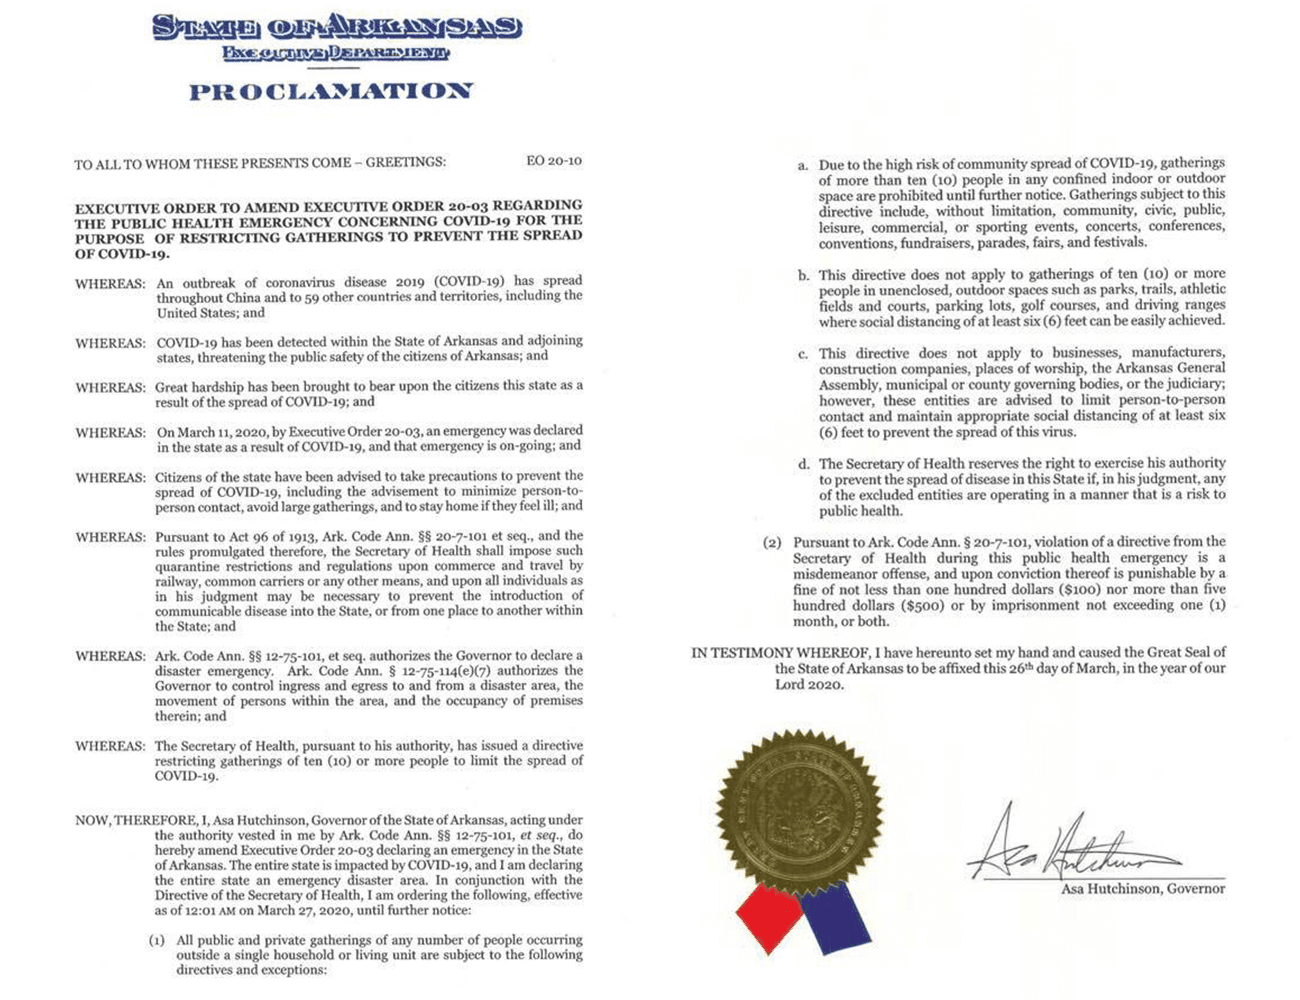 Governor Asa Hutchinson's Proclamation to restrict gatherings to prevent spread of COVID-19